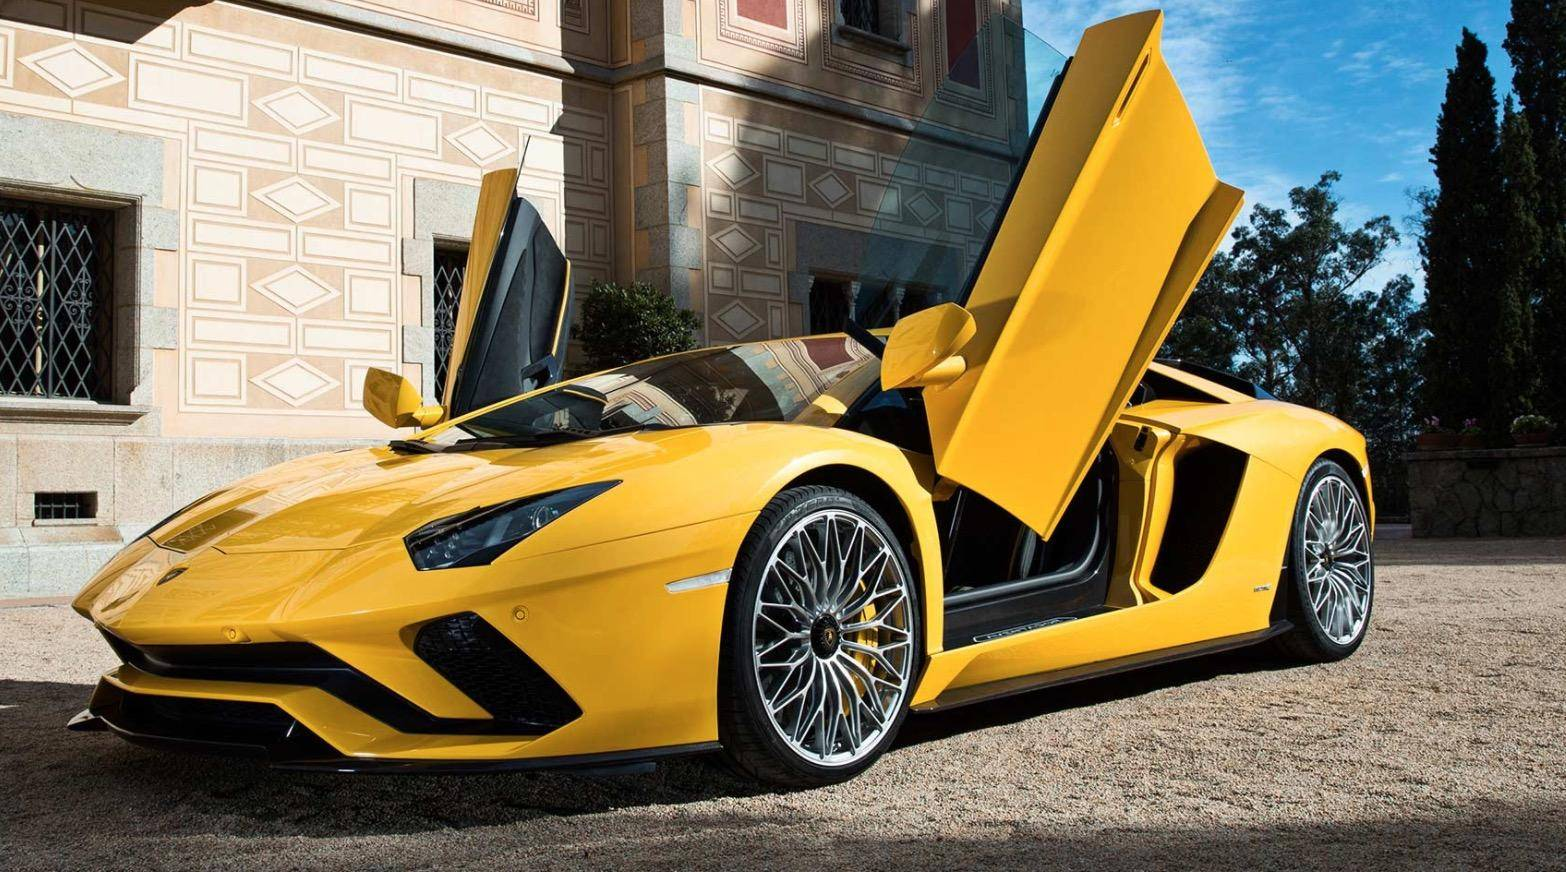 Gentil 2018 Lamborghini Aventador S Is The First Supercar To Support  Android Auto